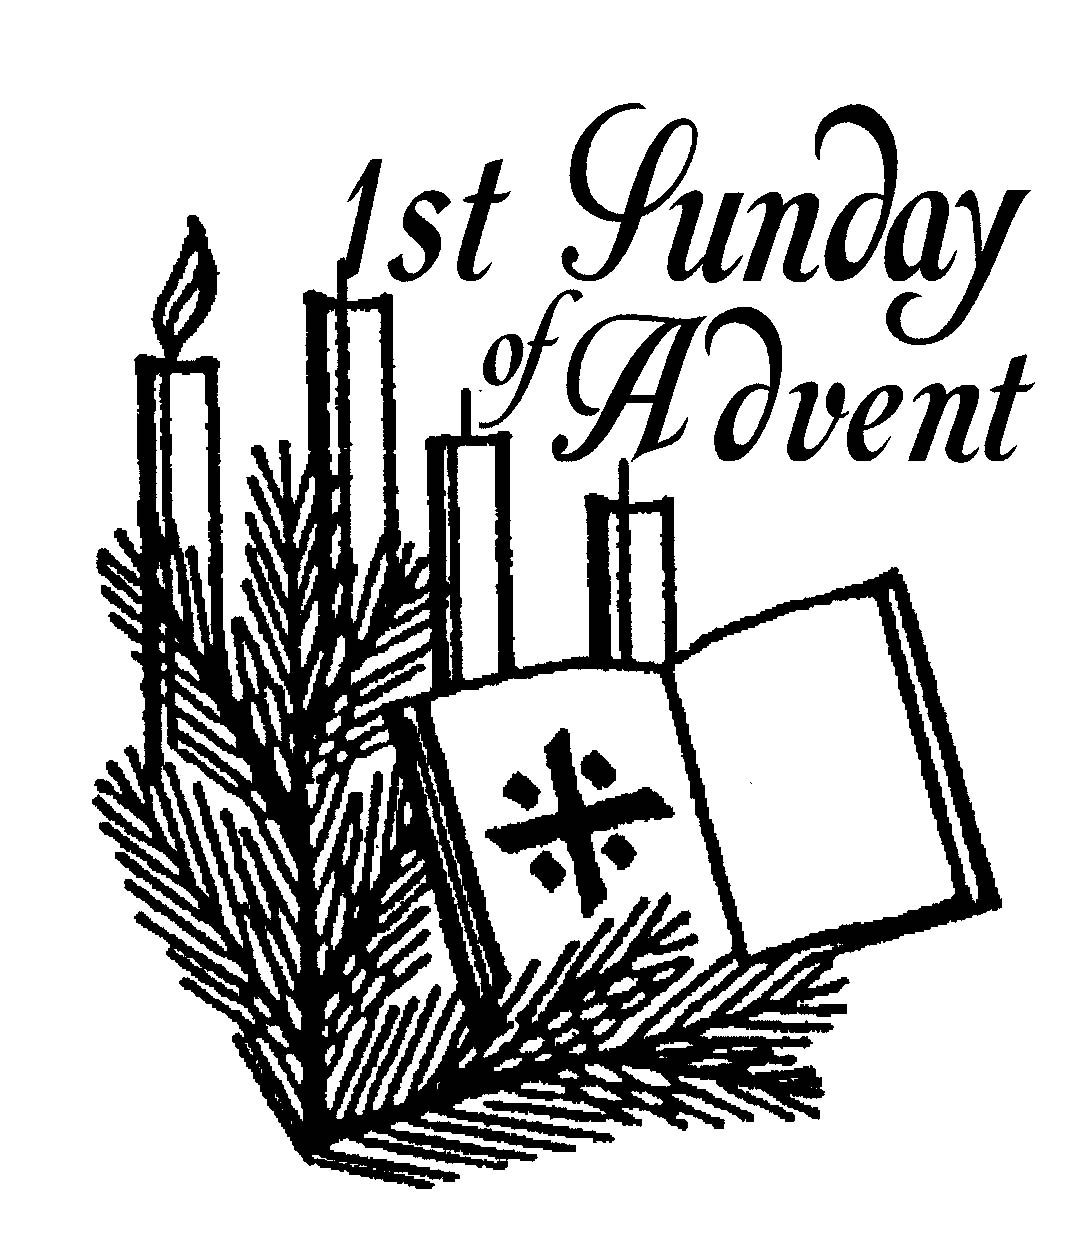 Free Clipart For First Sunday After Christmas Day